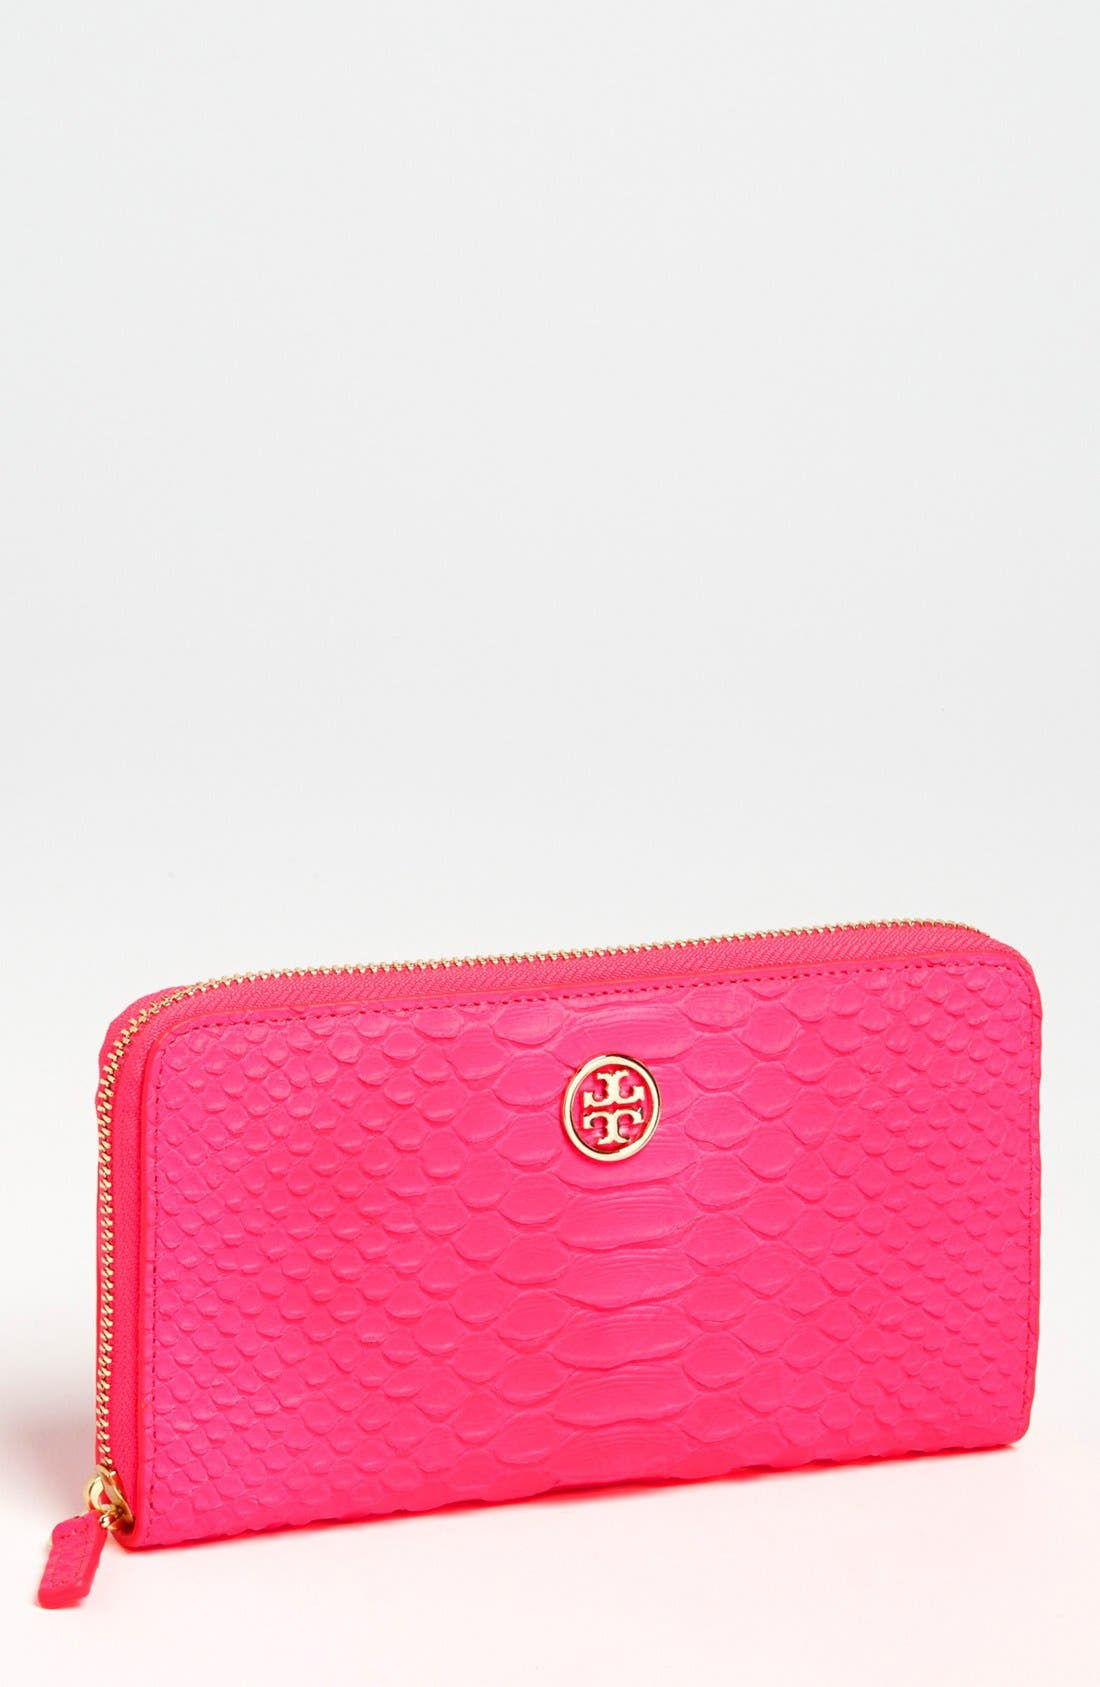 Main Image - Tory Burch 'Snake' Continental Wallet